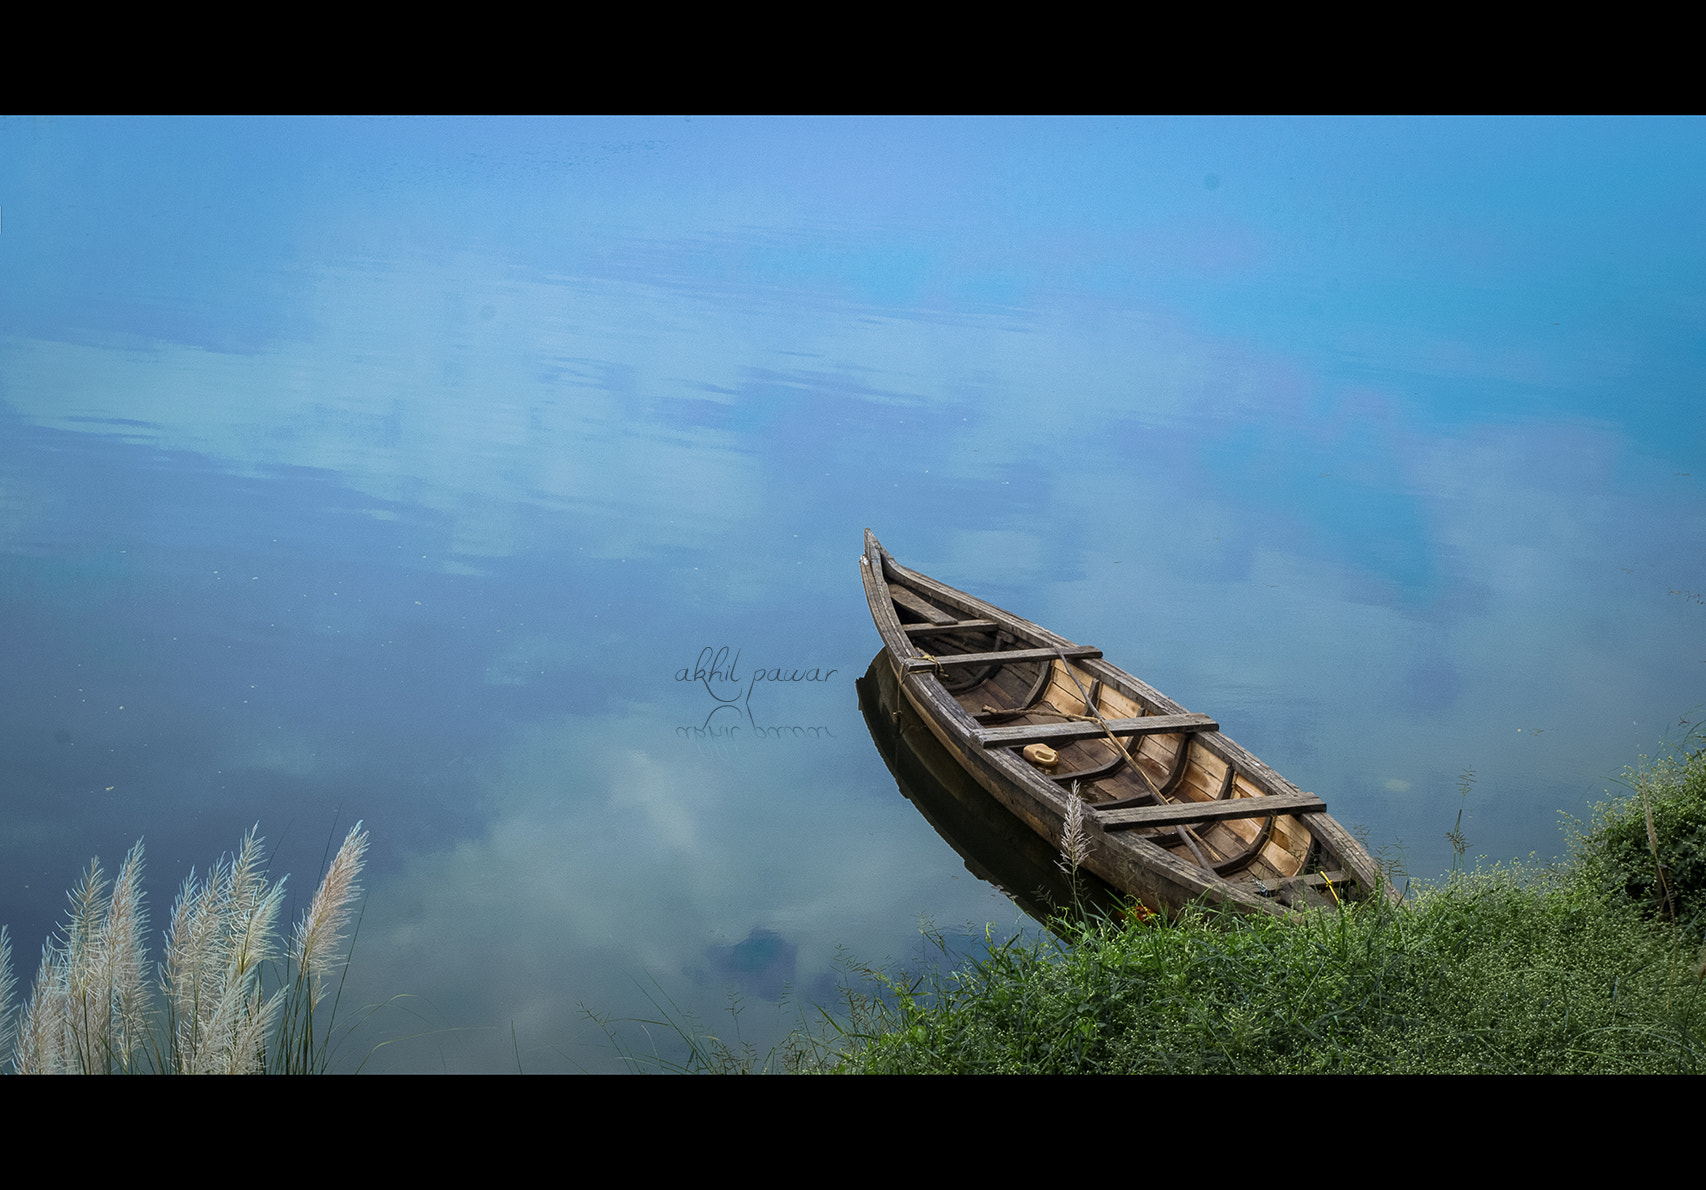 Photograph Boat on the River by Akhil Pawar on 500px